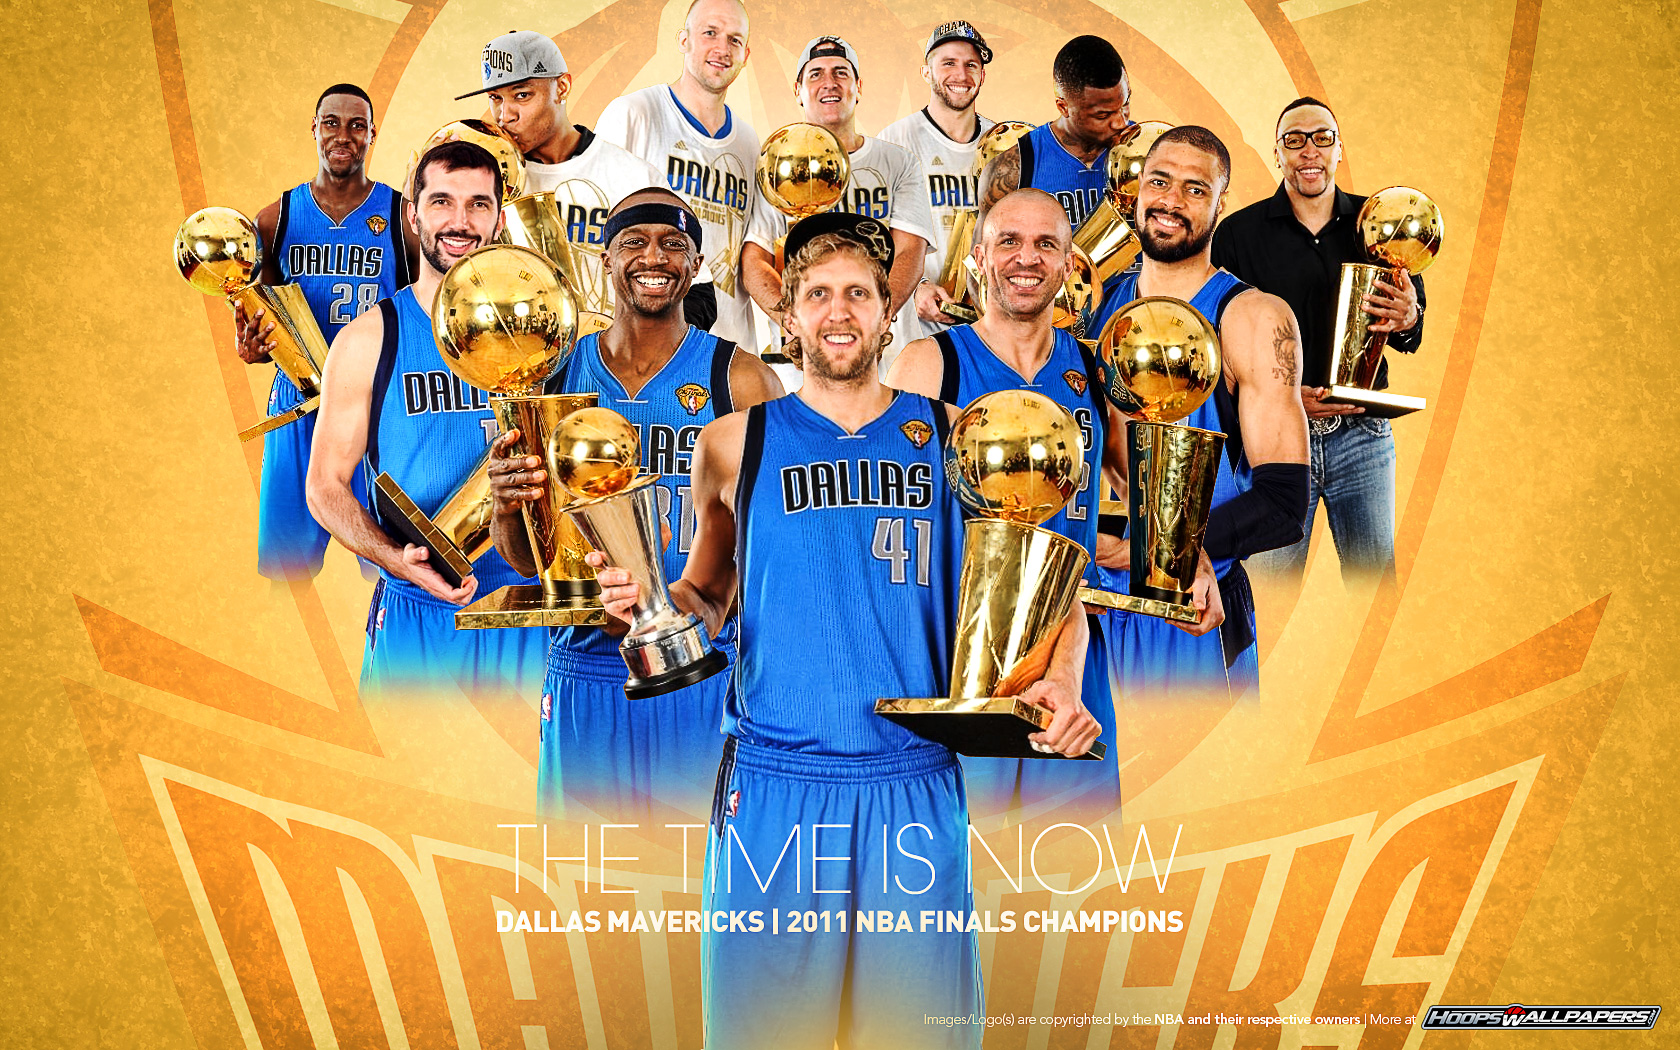 Dallas Mavericks 2011 Nba Champions Wallpaper